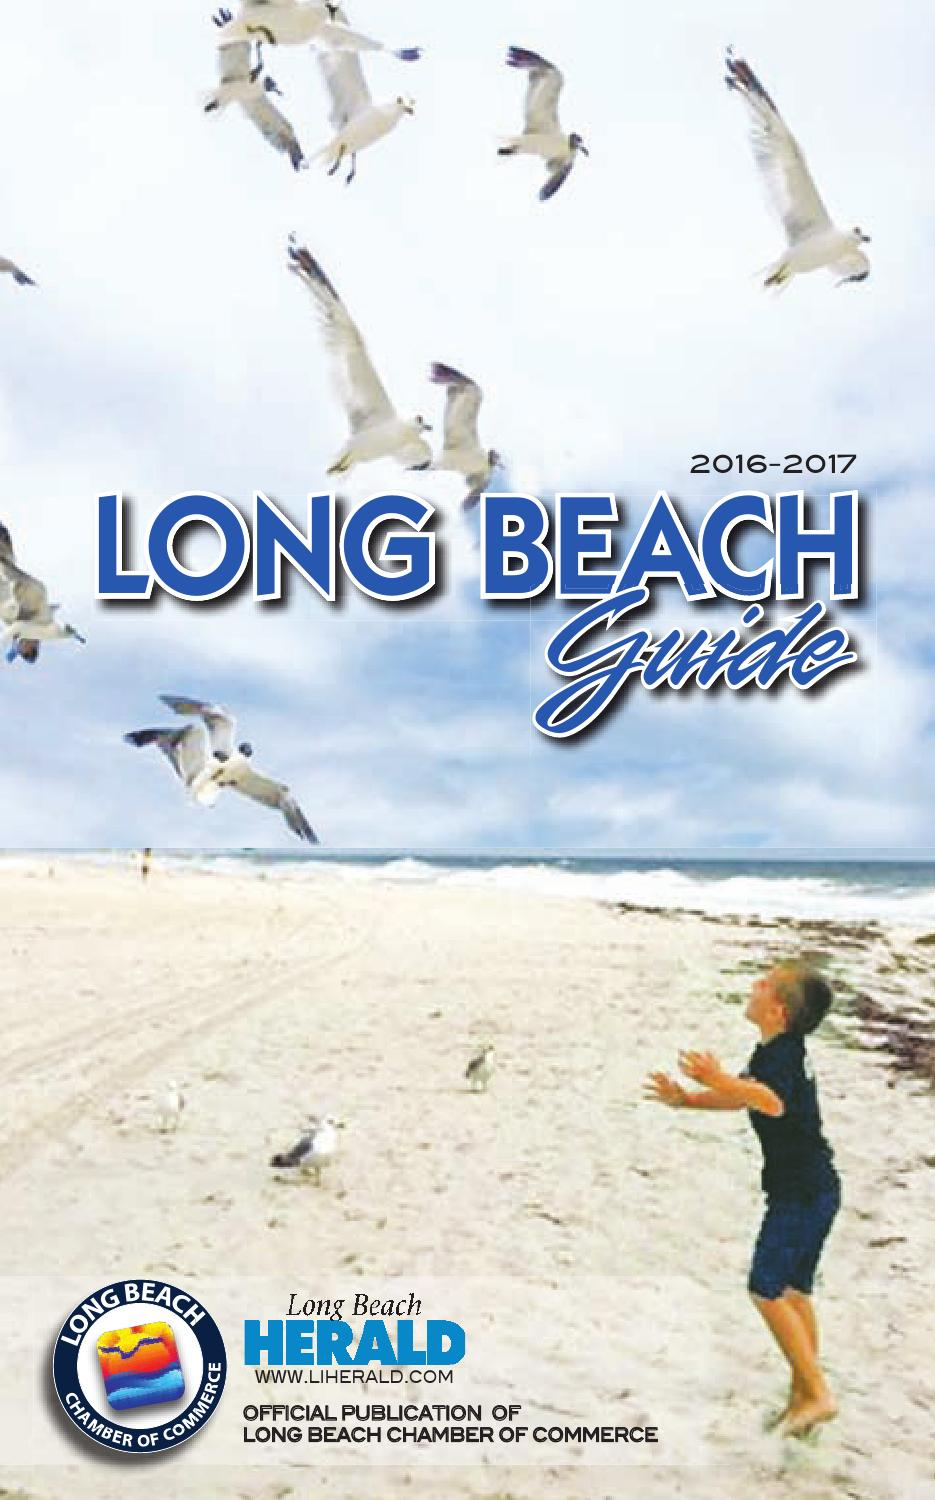 Long beach guide 2016 2017 by richner communications inc issuu aiddatafo Gallery